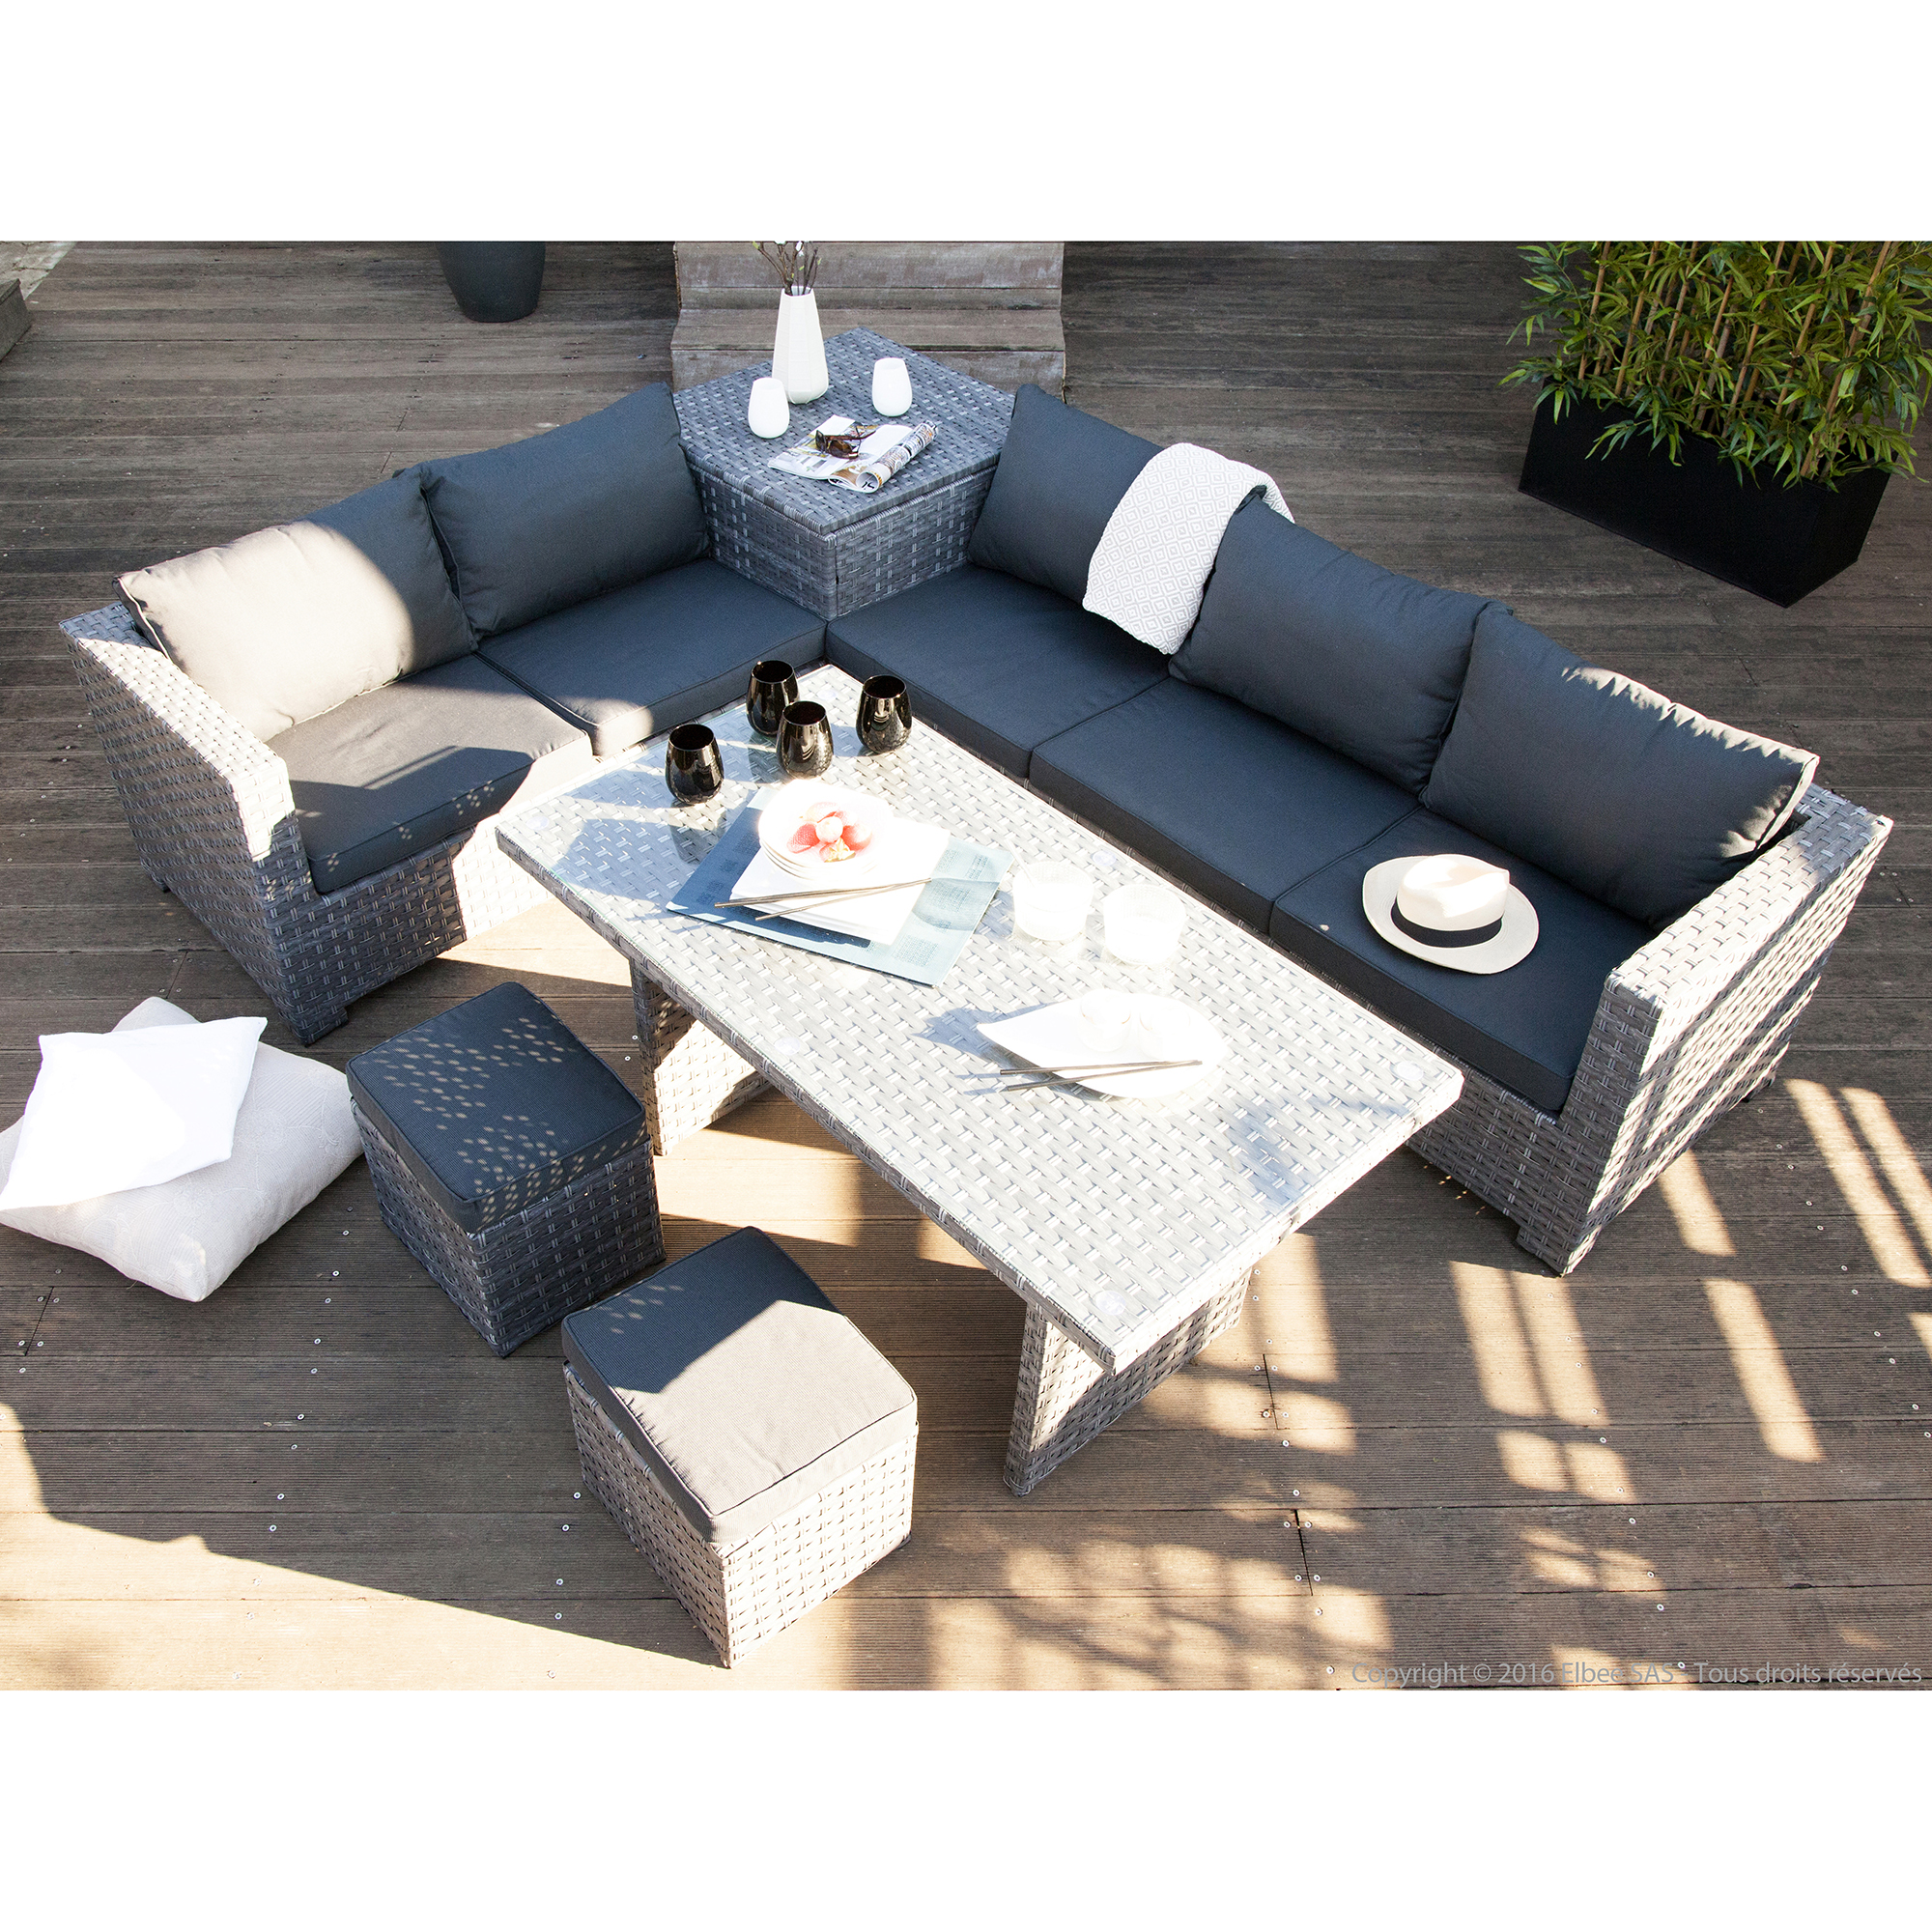 salon de jardin avec table haute id es de d coration. Black Bedroom Furniture Sets. Home Design Ideas